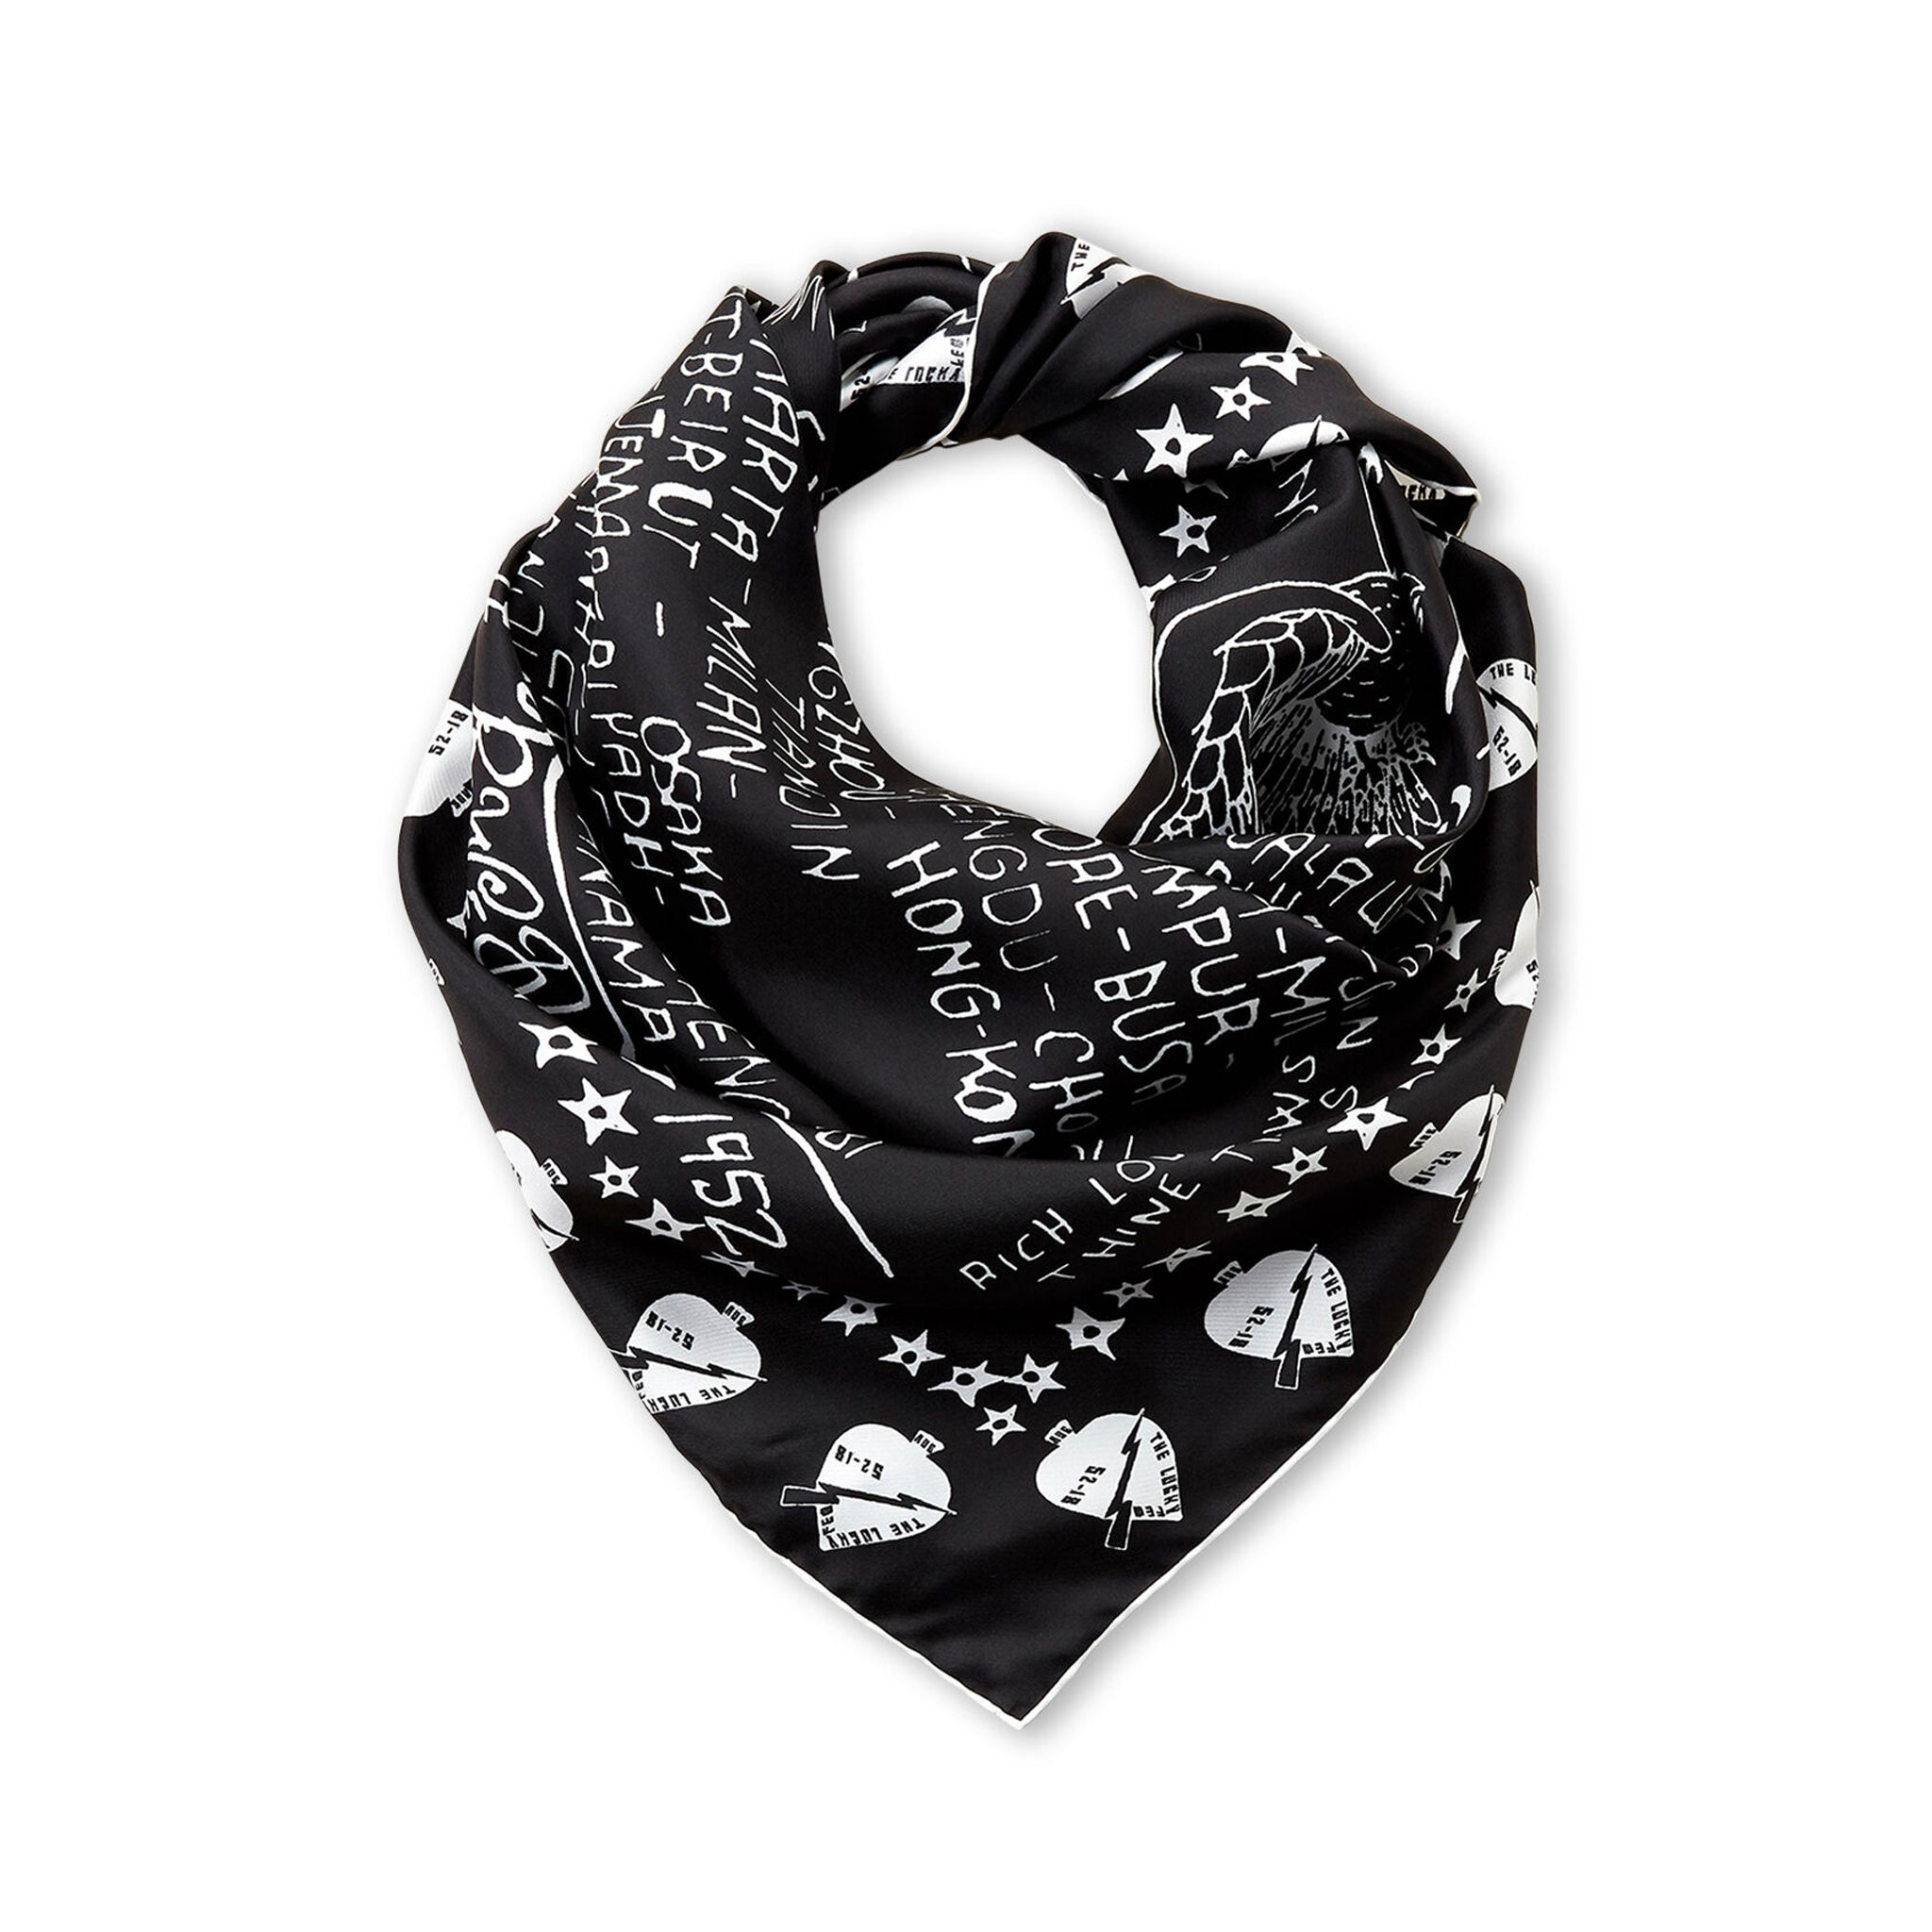 Givenchy World Tour Silk Scarf